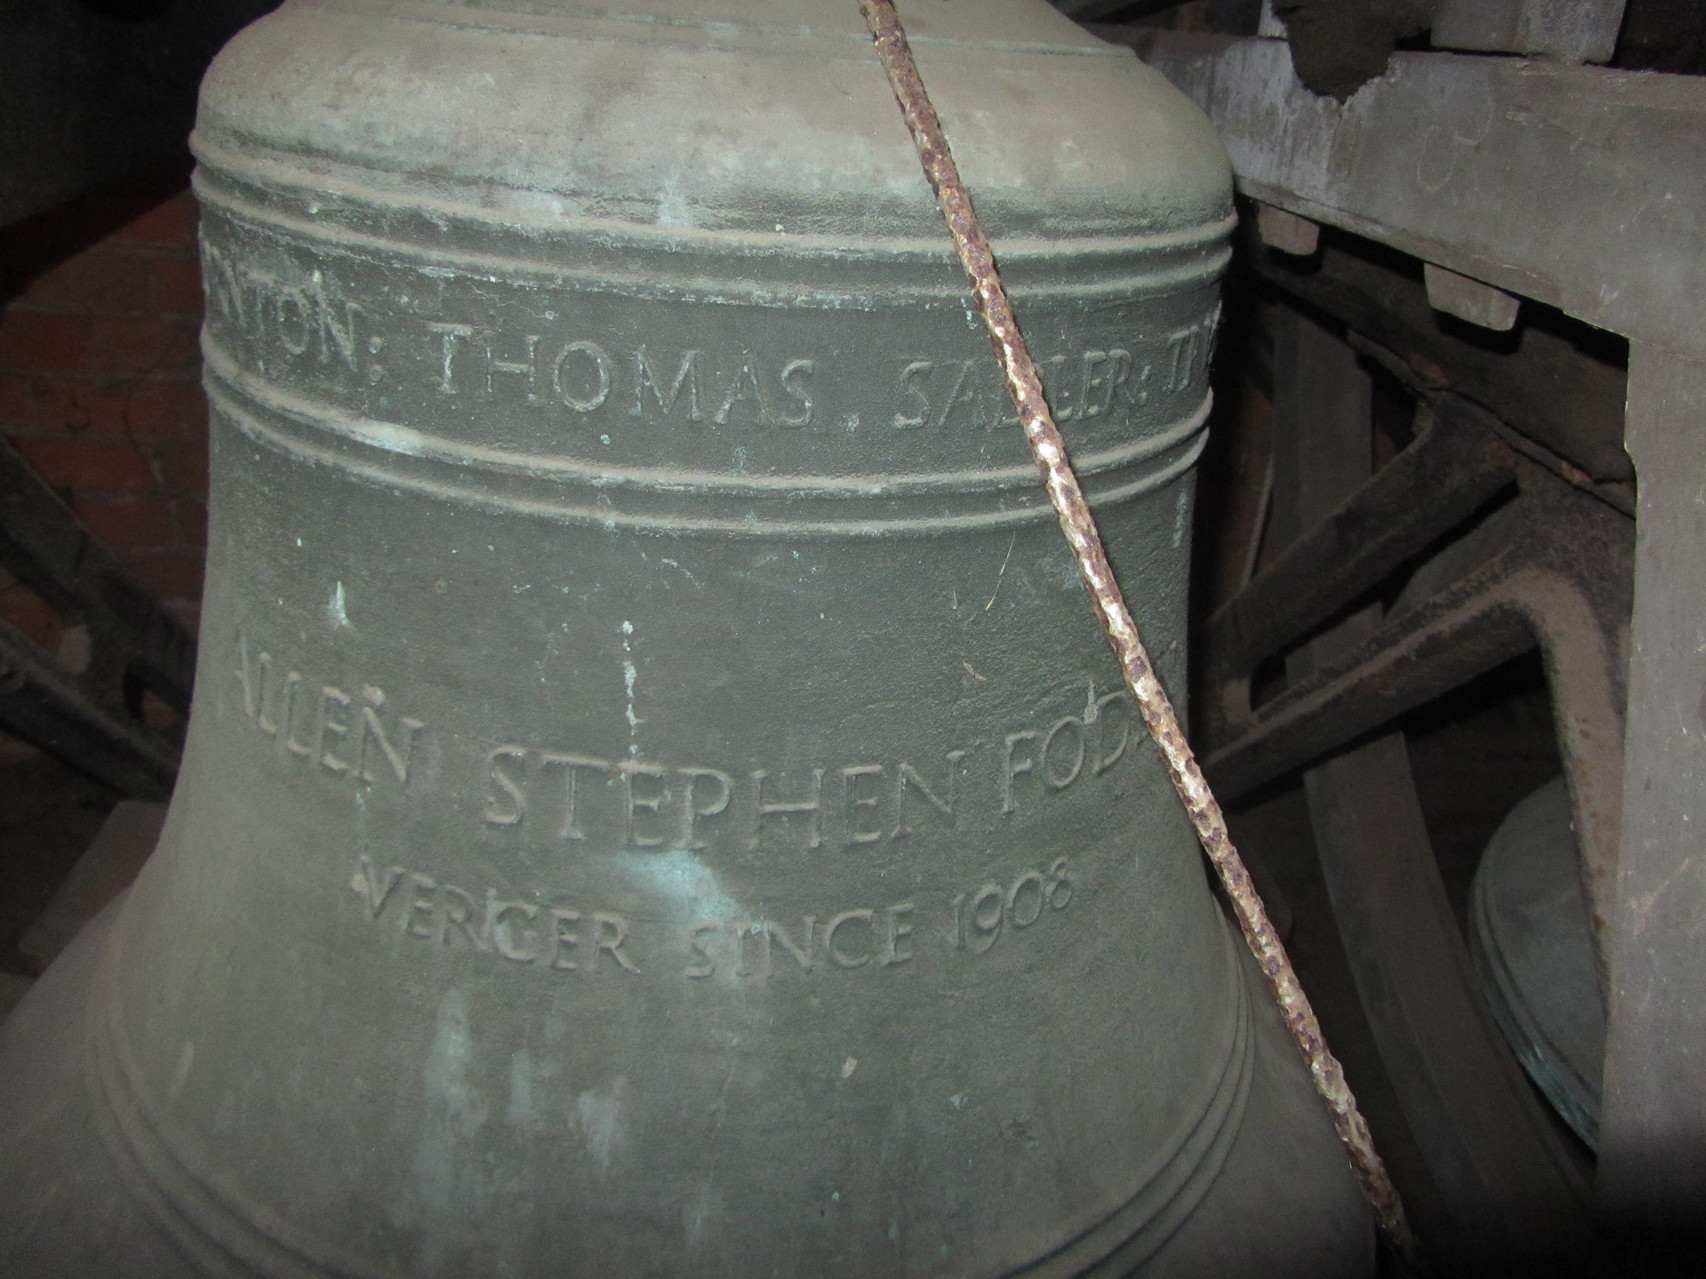 A bell in the down position